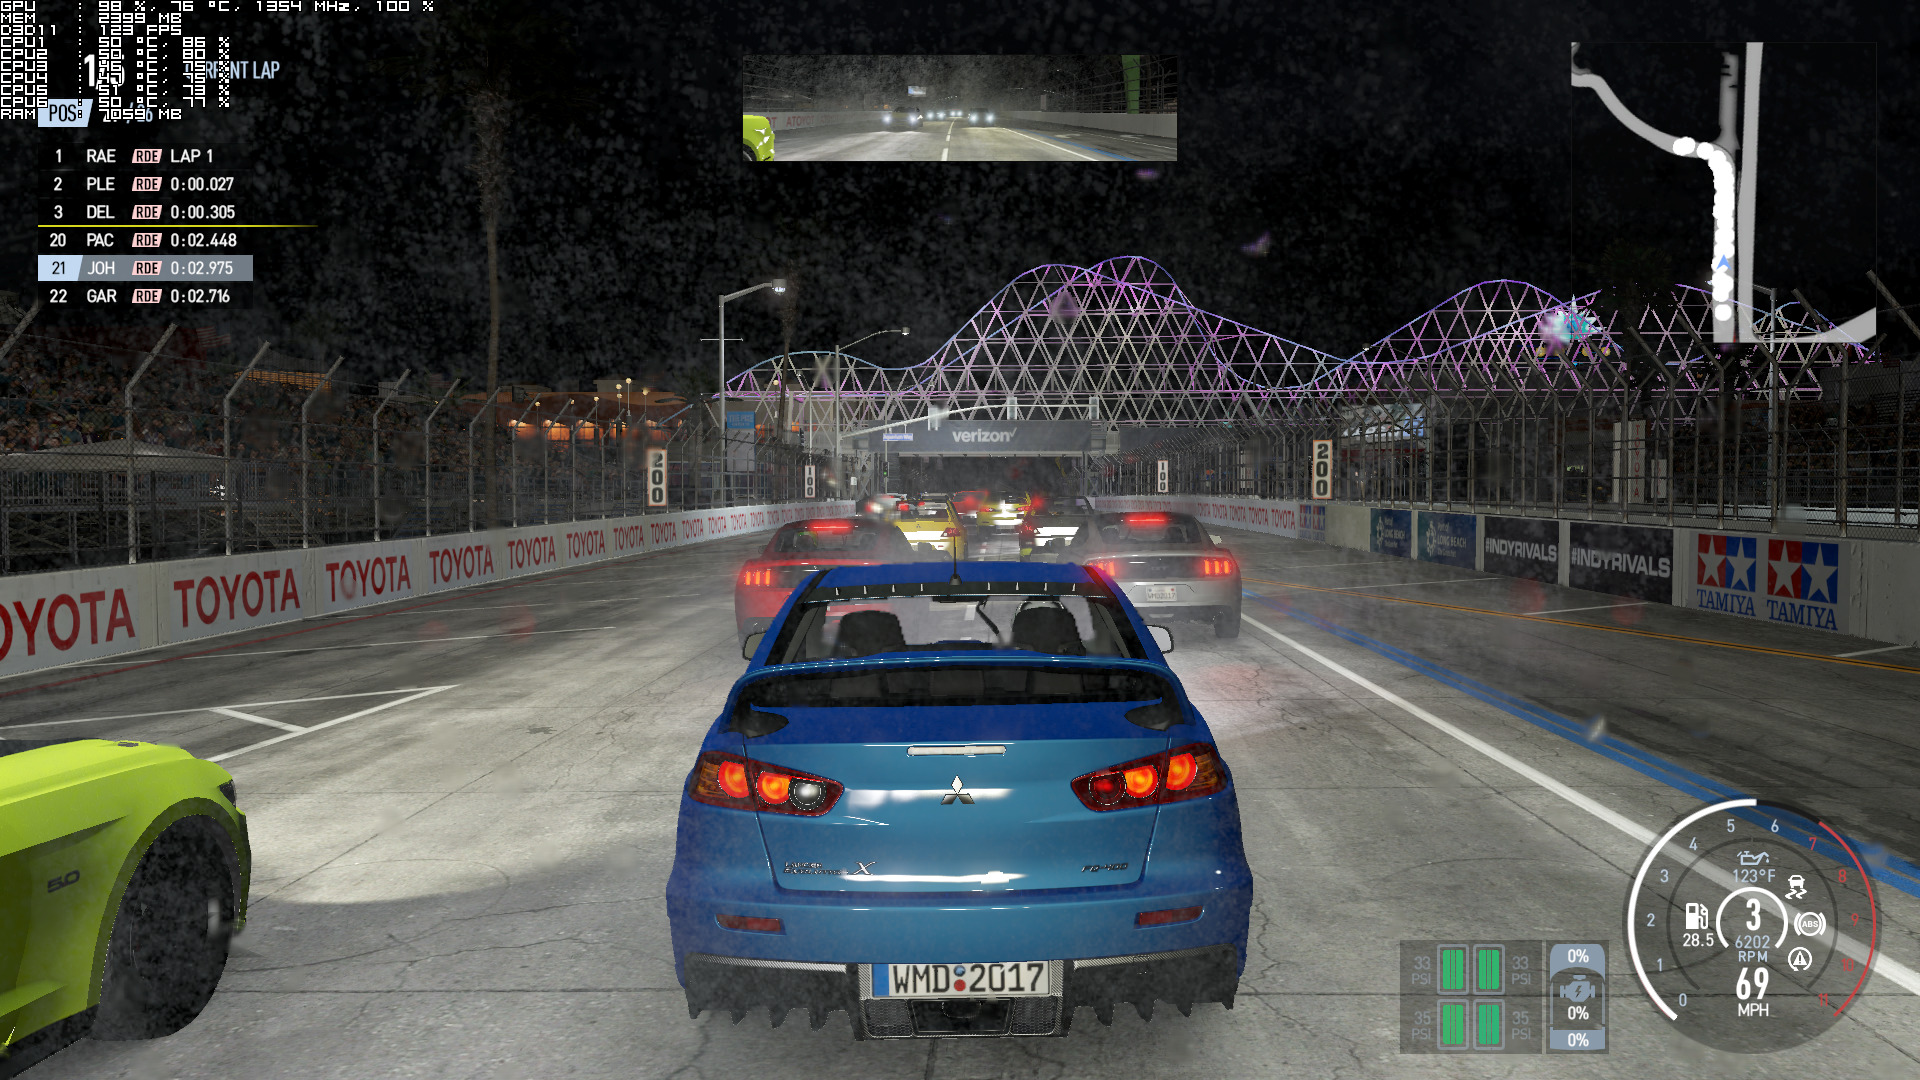 Graphics Wise Project Cars 2 Is One Of The Most Beautiful Racing To Date All Are Highly Detailed And Dynamic Weather Time Day